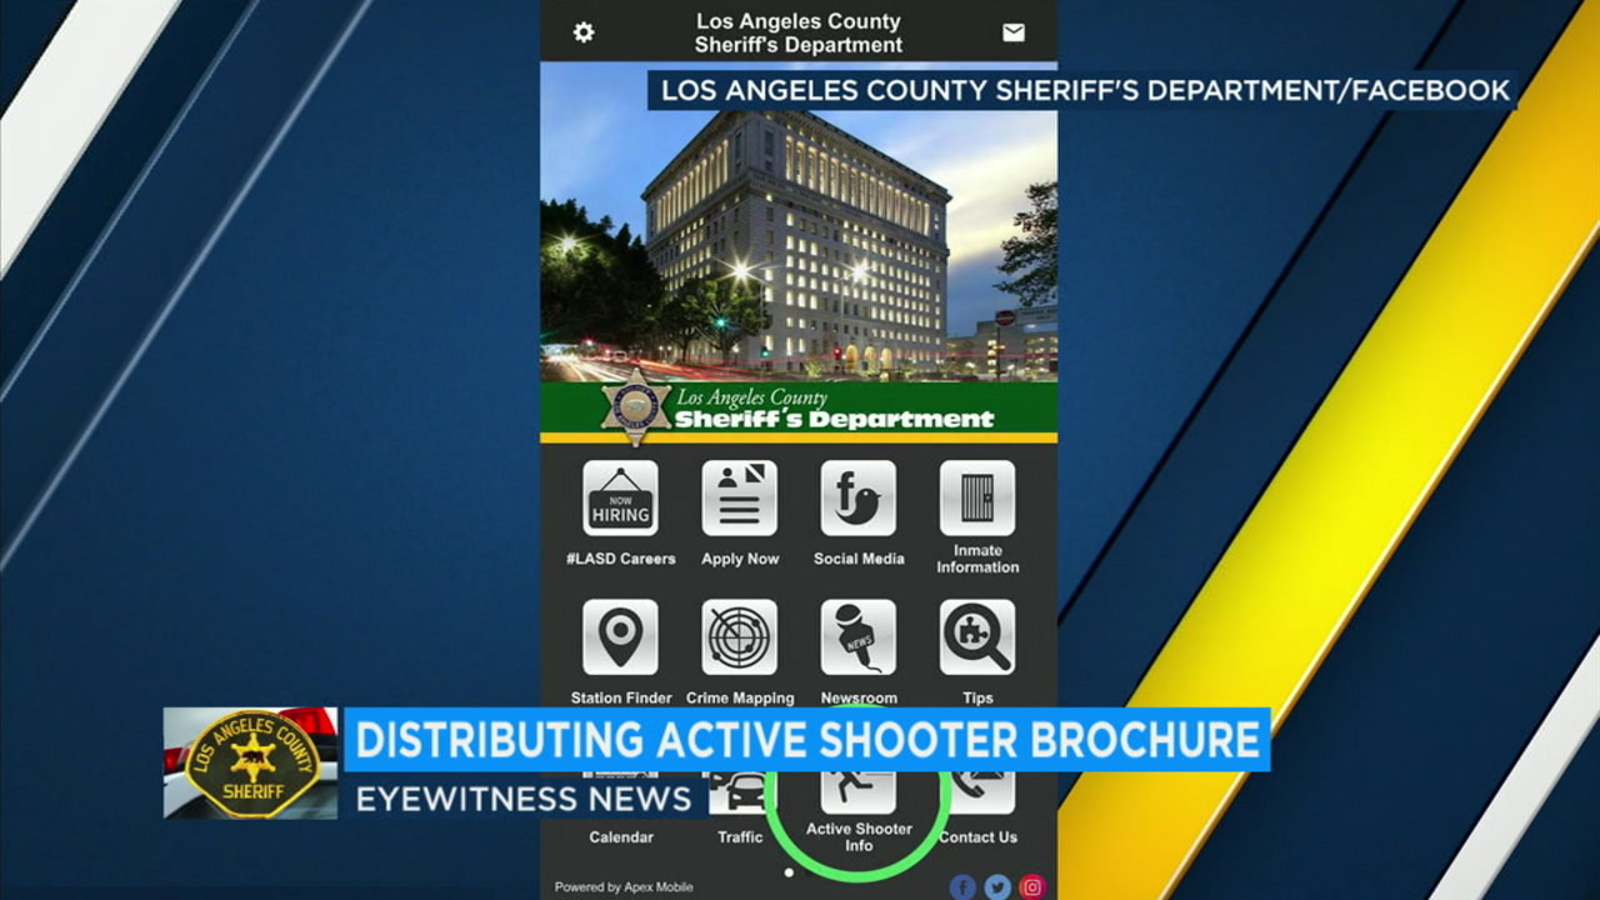 LA County Sheriff's Department offers tips to survive active shooter  situation